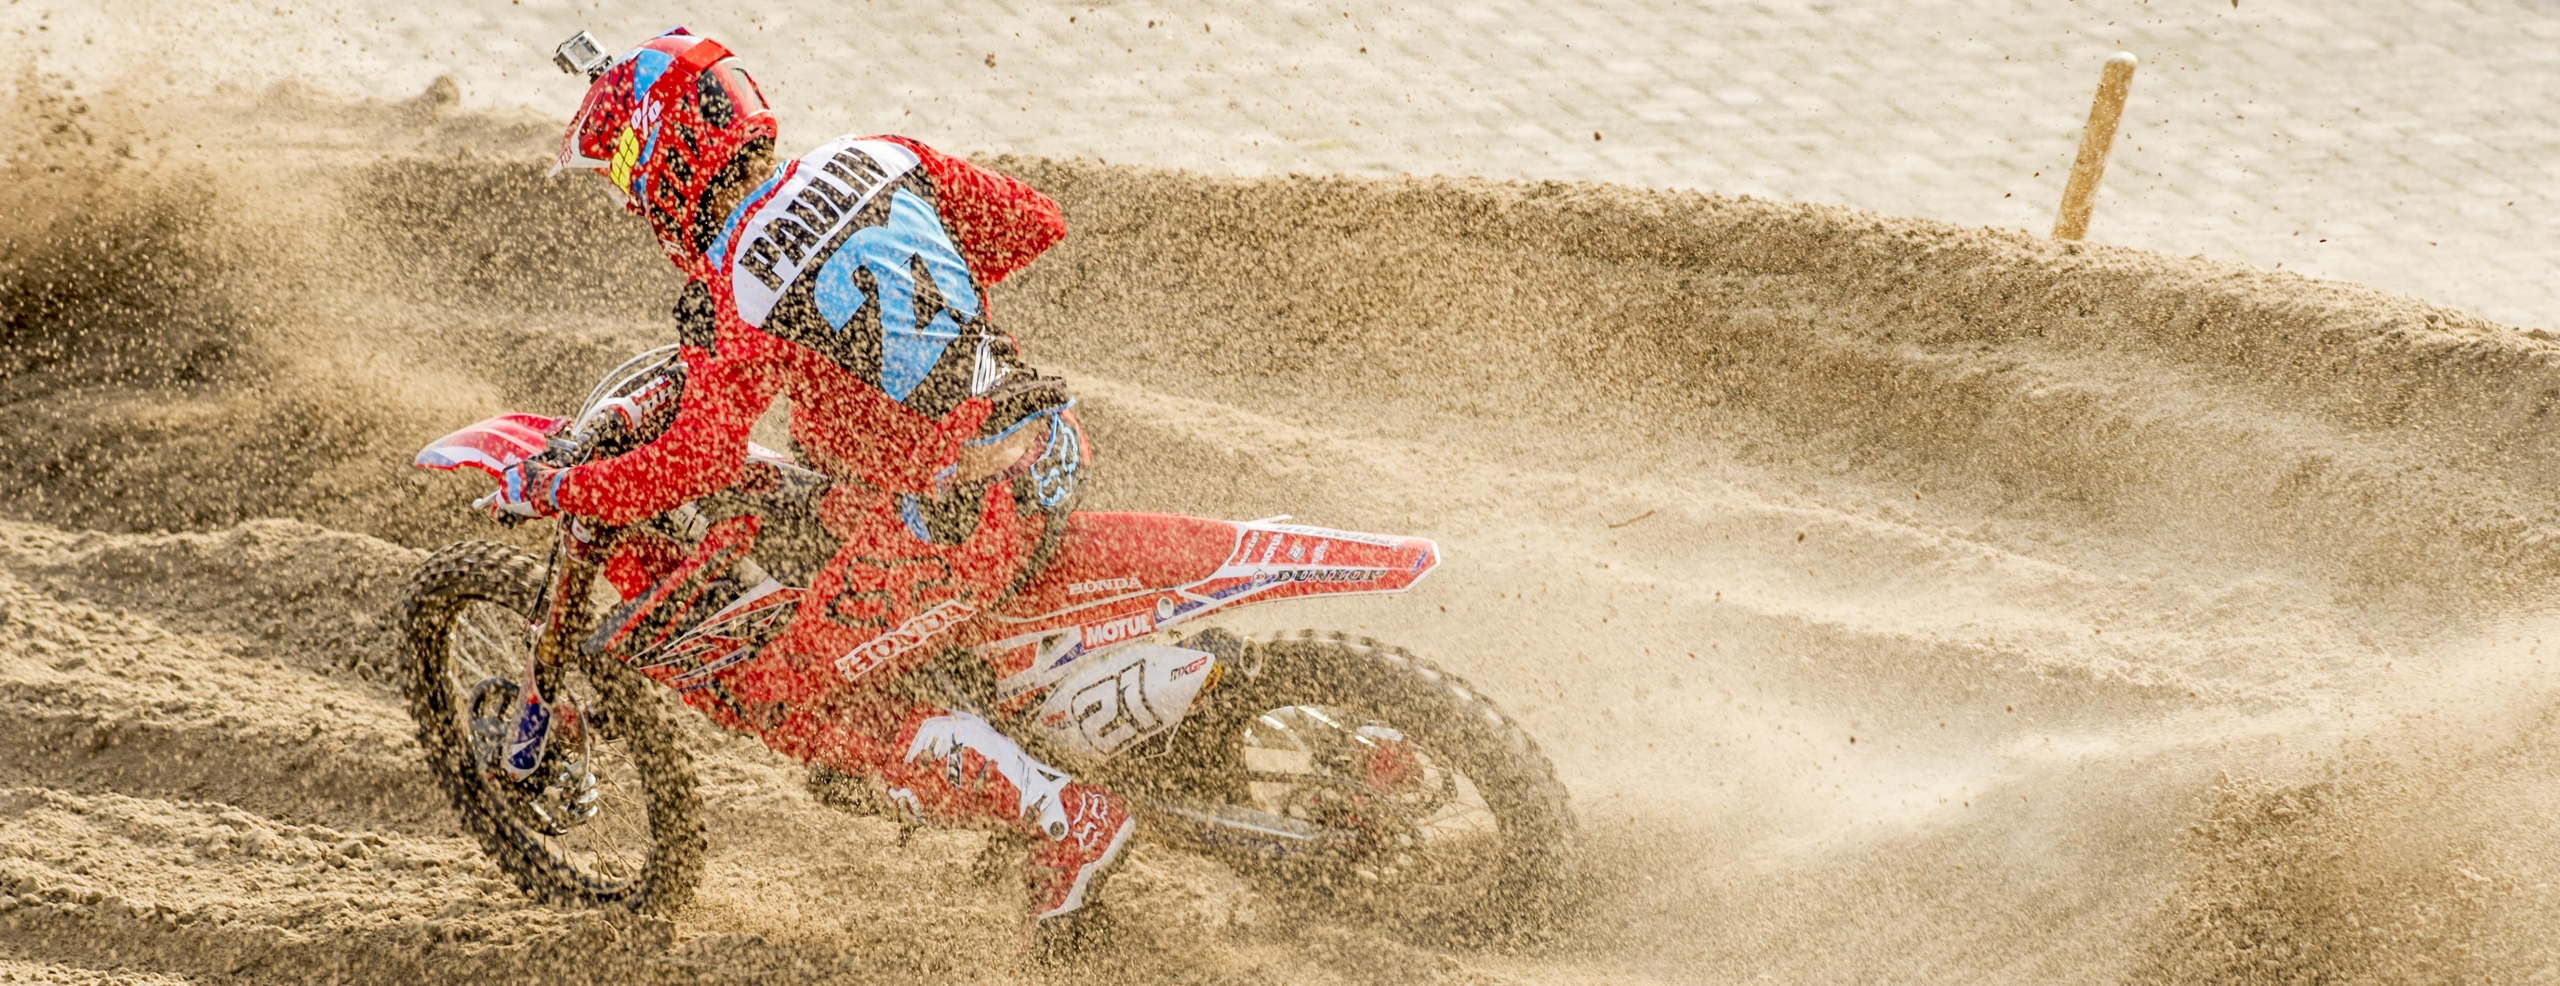 Challenging start to the MXGP of the Netherlands for Team HRC